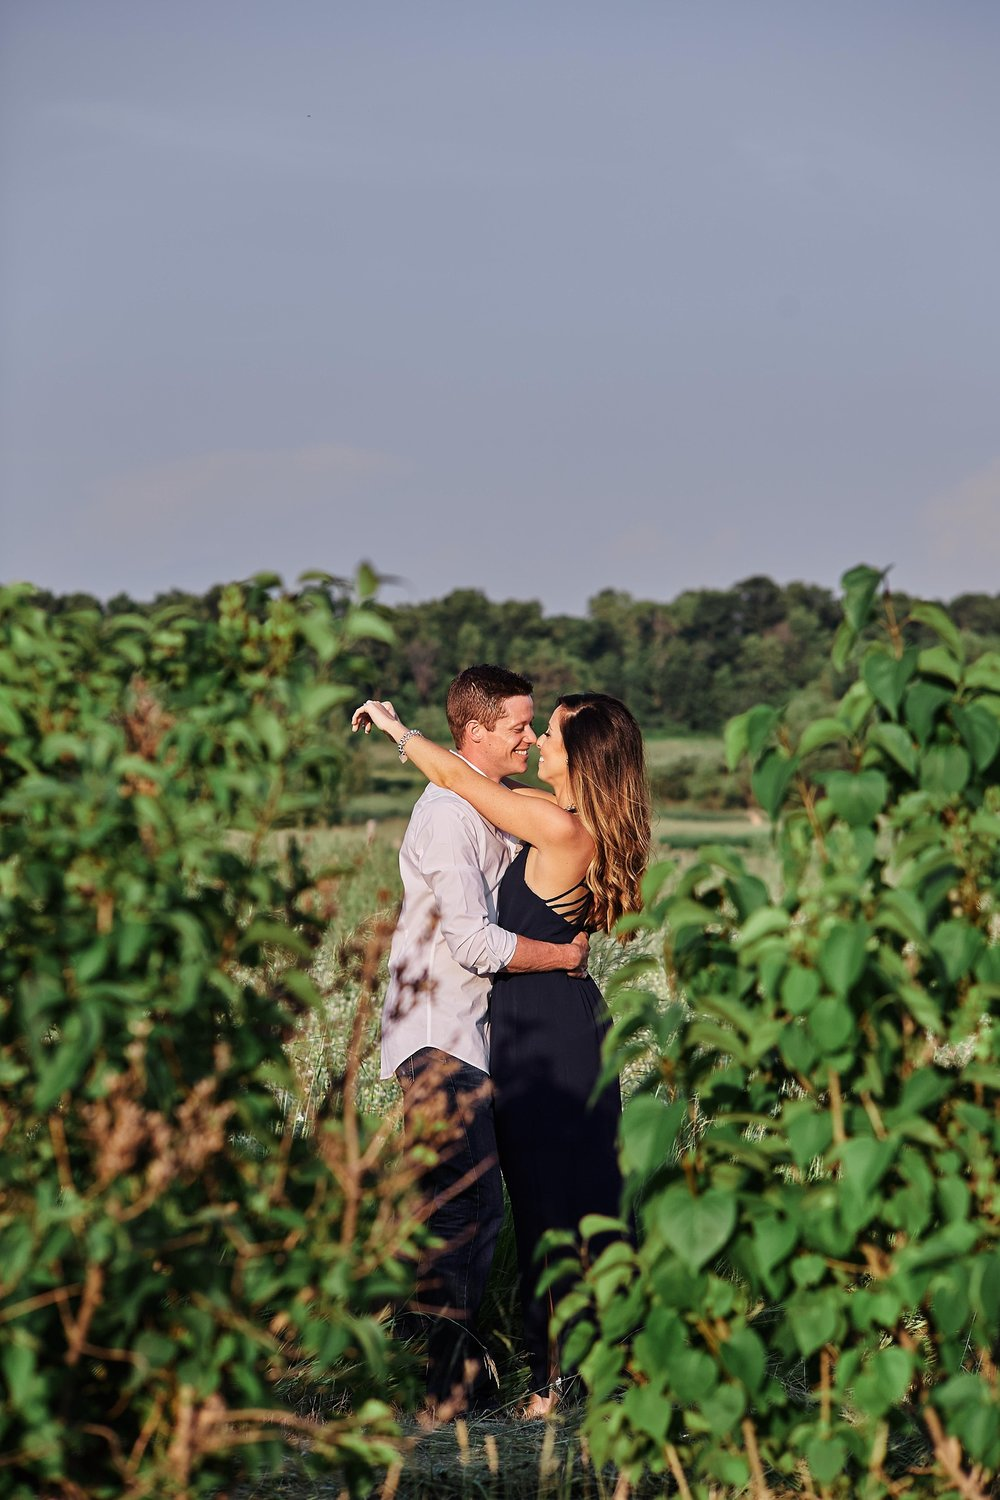 Strawberry-Farm-Engagement-Session-Alexandria-Minnesota-Outdoor_0189.jpg